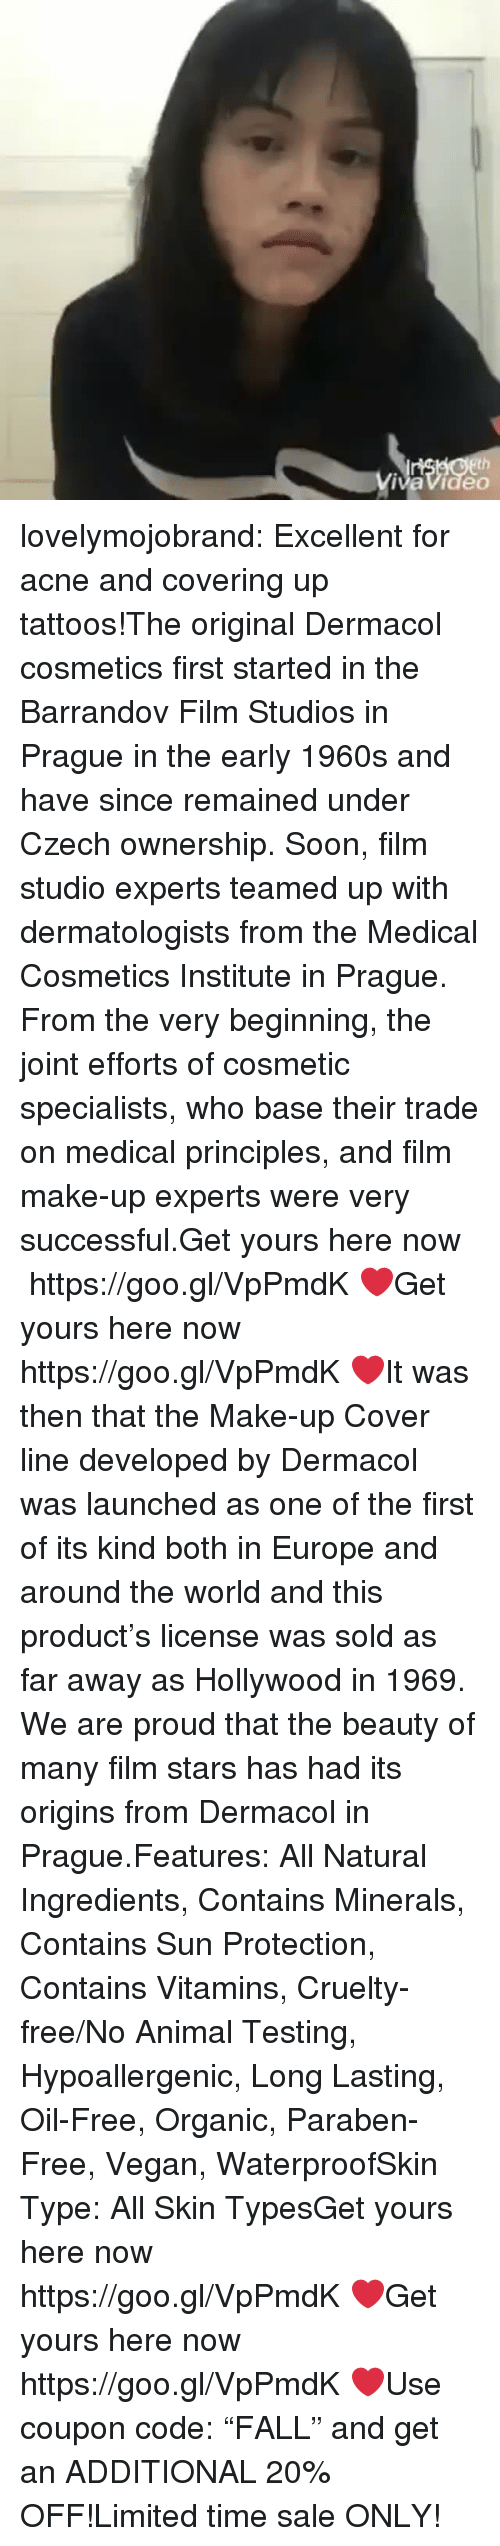 """Soon..., Target, and Tattoos: vaVideo lovelymojobrand:  Excellent for acne and covering up tattoos!The original Dermacol cosmetics first started in the Barrandov Film Studios in Prague in the early 1960s and have since remained under Czech ownership. Soon, film studio experts teamed up with dermatologists from the Medical Cosmetics Institute in Prague. From the very beginning, the joint efforts of cosmetic specialists, who base their trade on medical principles, and film make-up experts were very successful.Get yours here now https://goo.gl/VpPmdK❤Get yours here now  https://goo.gl/VpPmdK❤It was then that the Make-up Cover line developed by Dermacol was launched as one of the first of its kind both in Europe and around the world and this product's license was sold as far away as Hollywood in 1969. We are proud that the beauty of many film stars has had its origins from Dermacol in Prague.Features: All Natural Ingredients, Contains Minerals, Contains Sun Protection, Contains Vitamins, Cruelty-free/No Animal Testing, Hypoallergenic, Long Lasting, Oil-Free, Organic, Paraben-Free, Vegan, WaterproofSkin Type: All Skin TypesGet yours here now  https://goo.gl/VpPmdK❤Get yours here now  https://goo.gl/VpPmdK❤Use coupon code:""""FALL"""" and get an ADDITIONAL 20% OFF!Limited time sale ONLY!"""